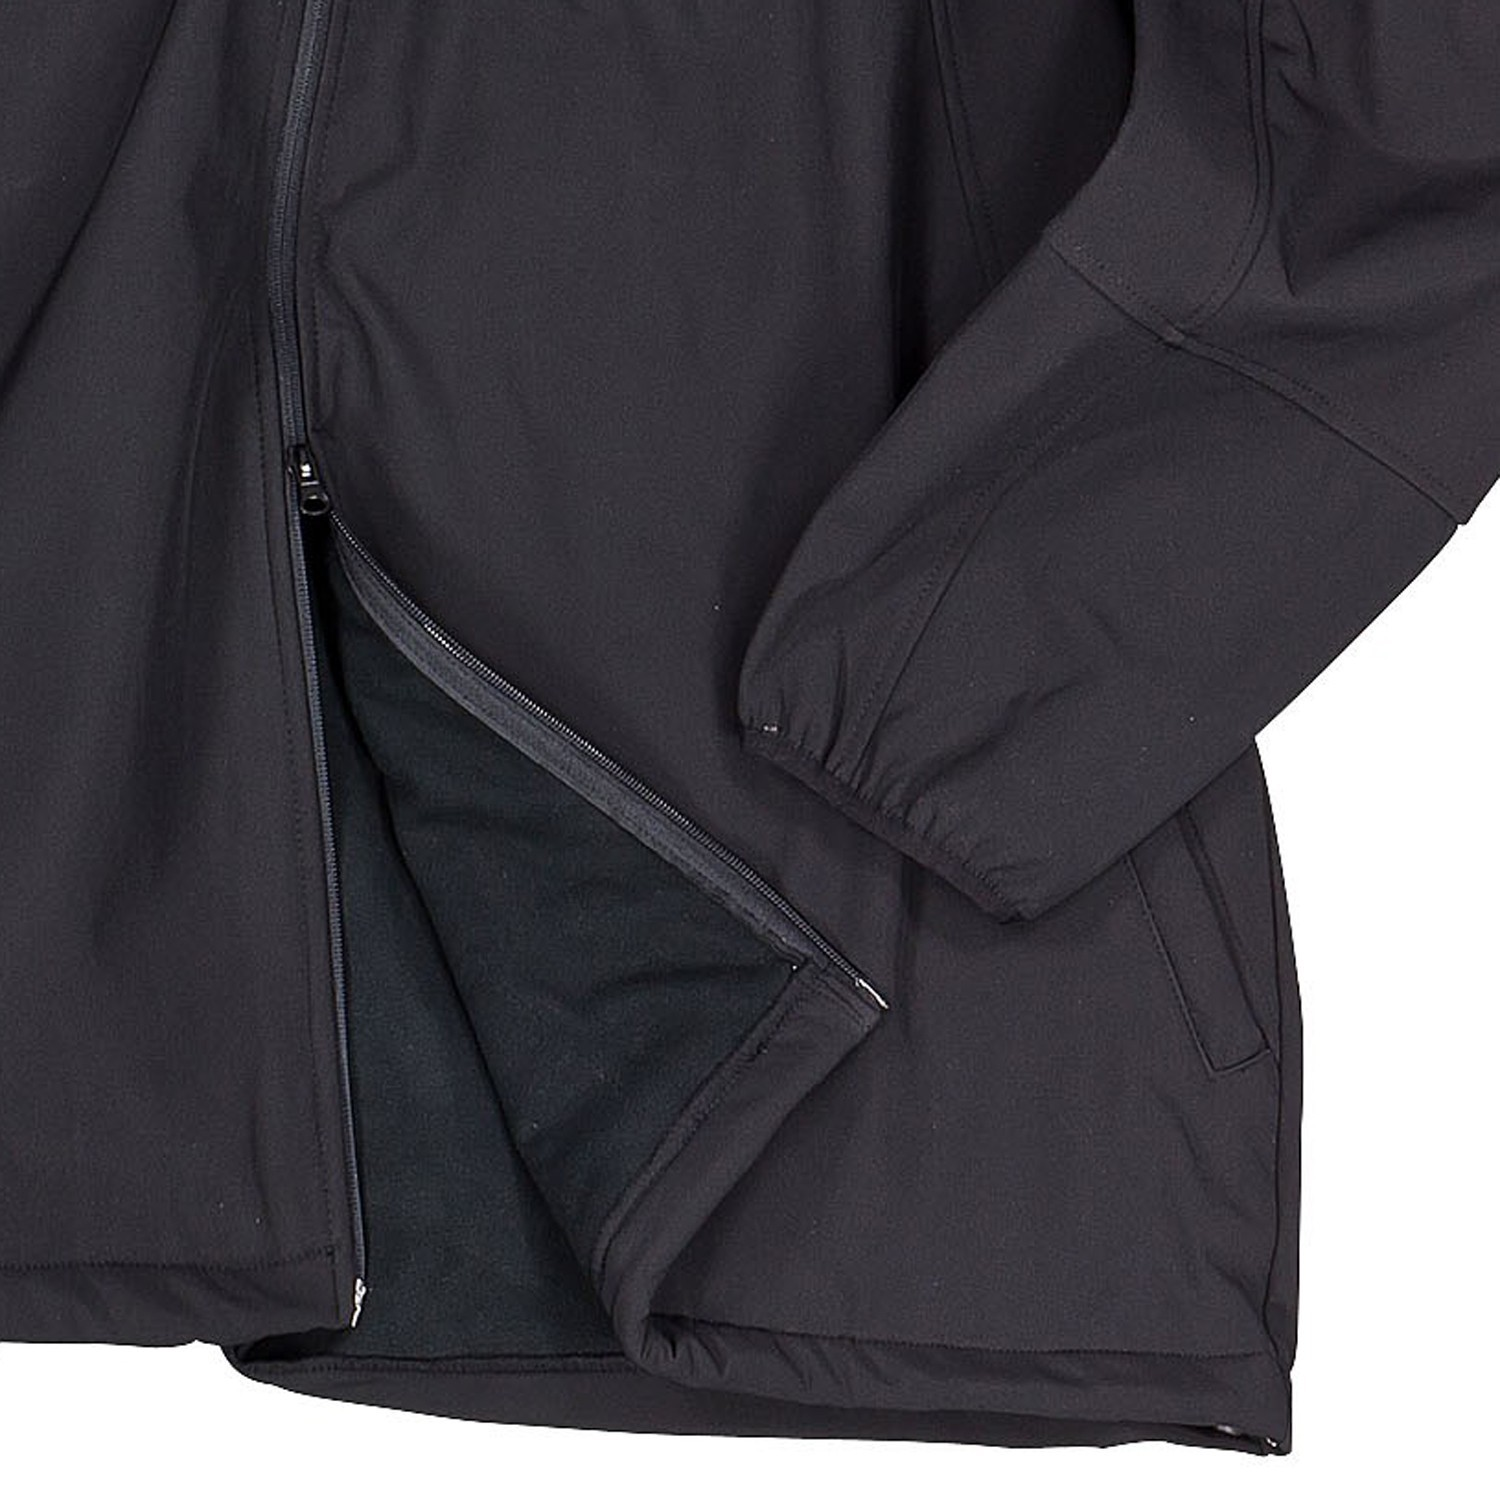 Detail Image to Softshell jacket in black by Marc&Mark in extra large sizes up to 10XL